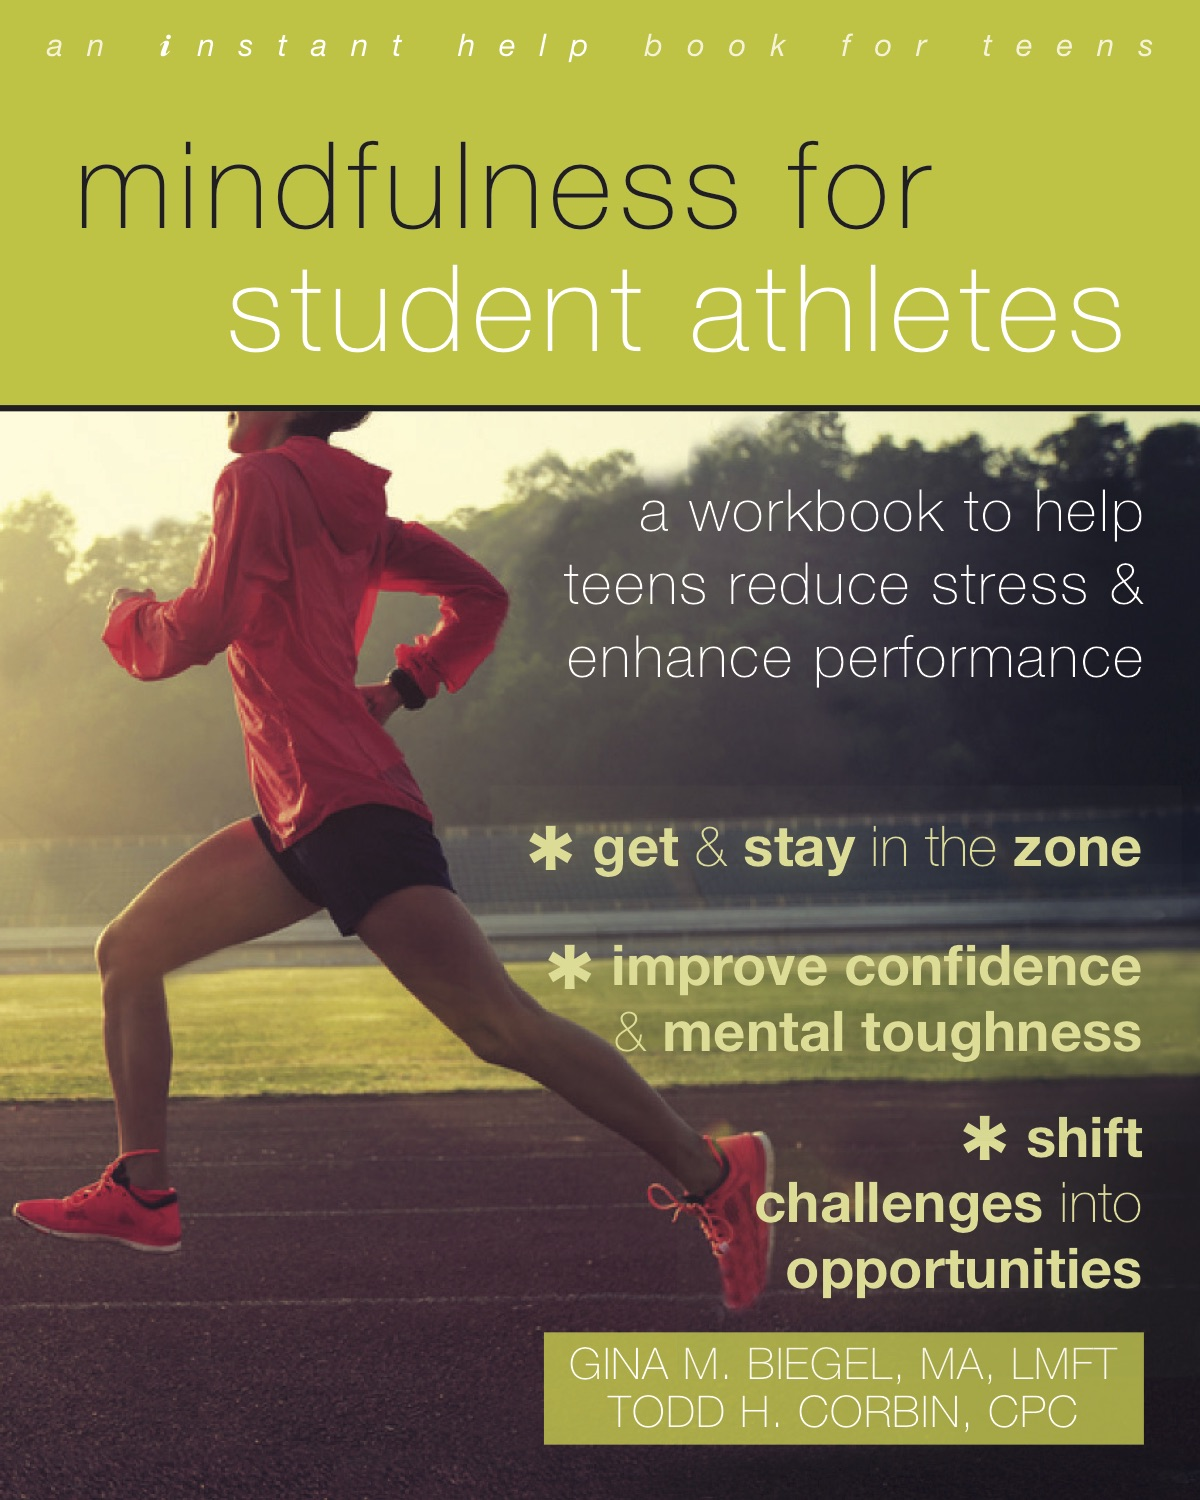 Mindfulness for Student Athletes: A Workbook to Help Teens Reduce Stress & Enhance Performance